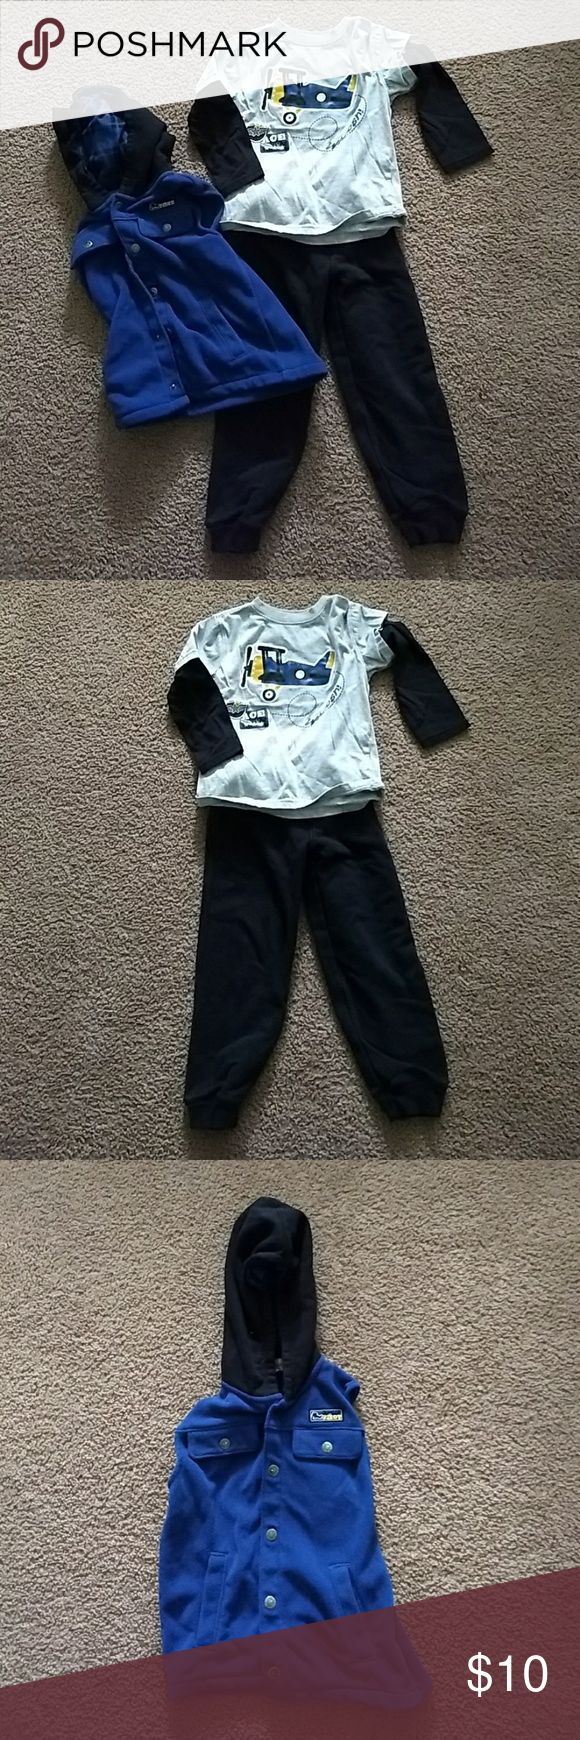 Kids Headquarters bundle Ling sleeve top and black bottoms, hooded sleeveless blue vest goes over shirt Kids Headquarters Matching Sets